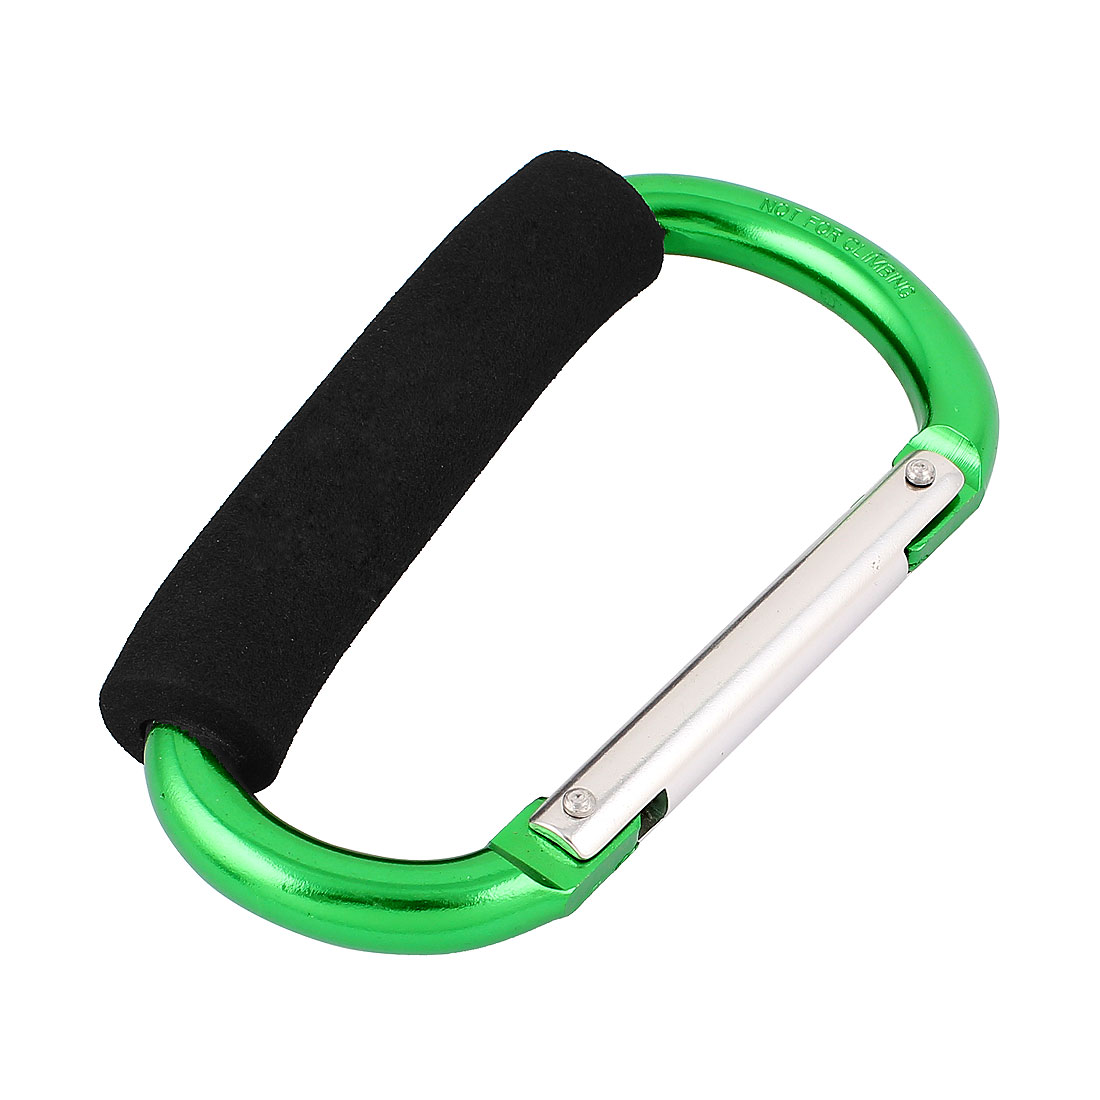 Cycling D Shape Snap Shopping Bag Hook Organizing Clip Carabiner Cords Carrier w Handle Grip 14cm Green